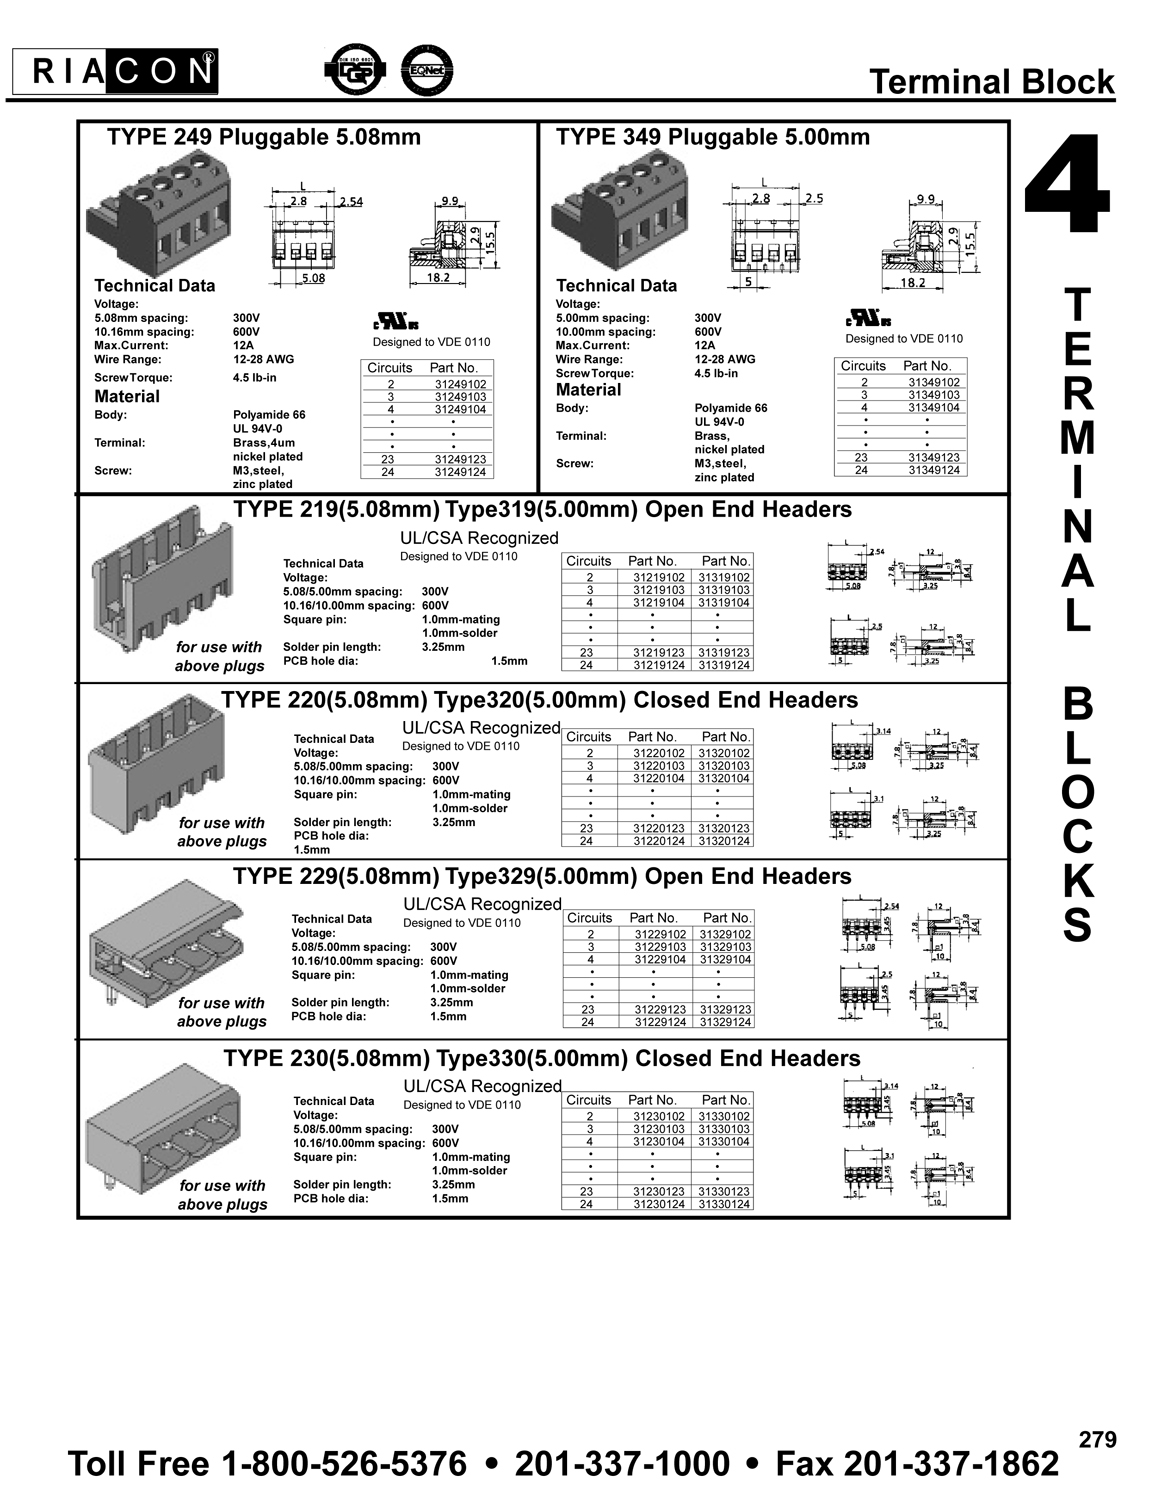 relay specialties catalog - riacon